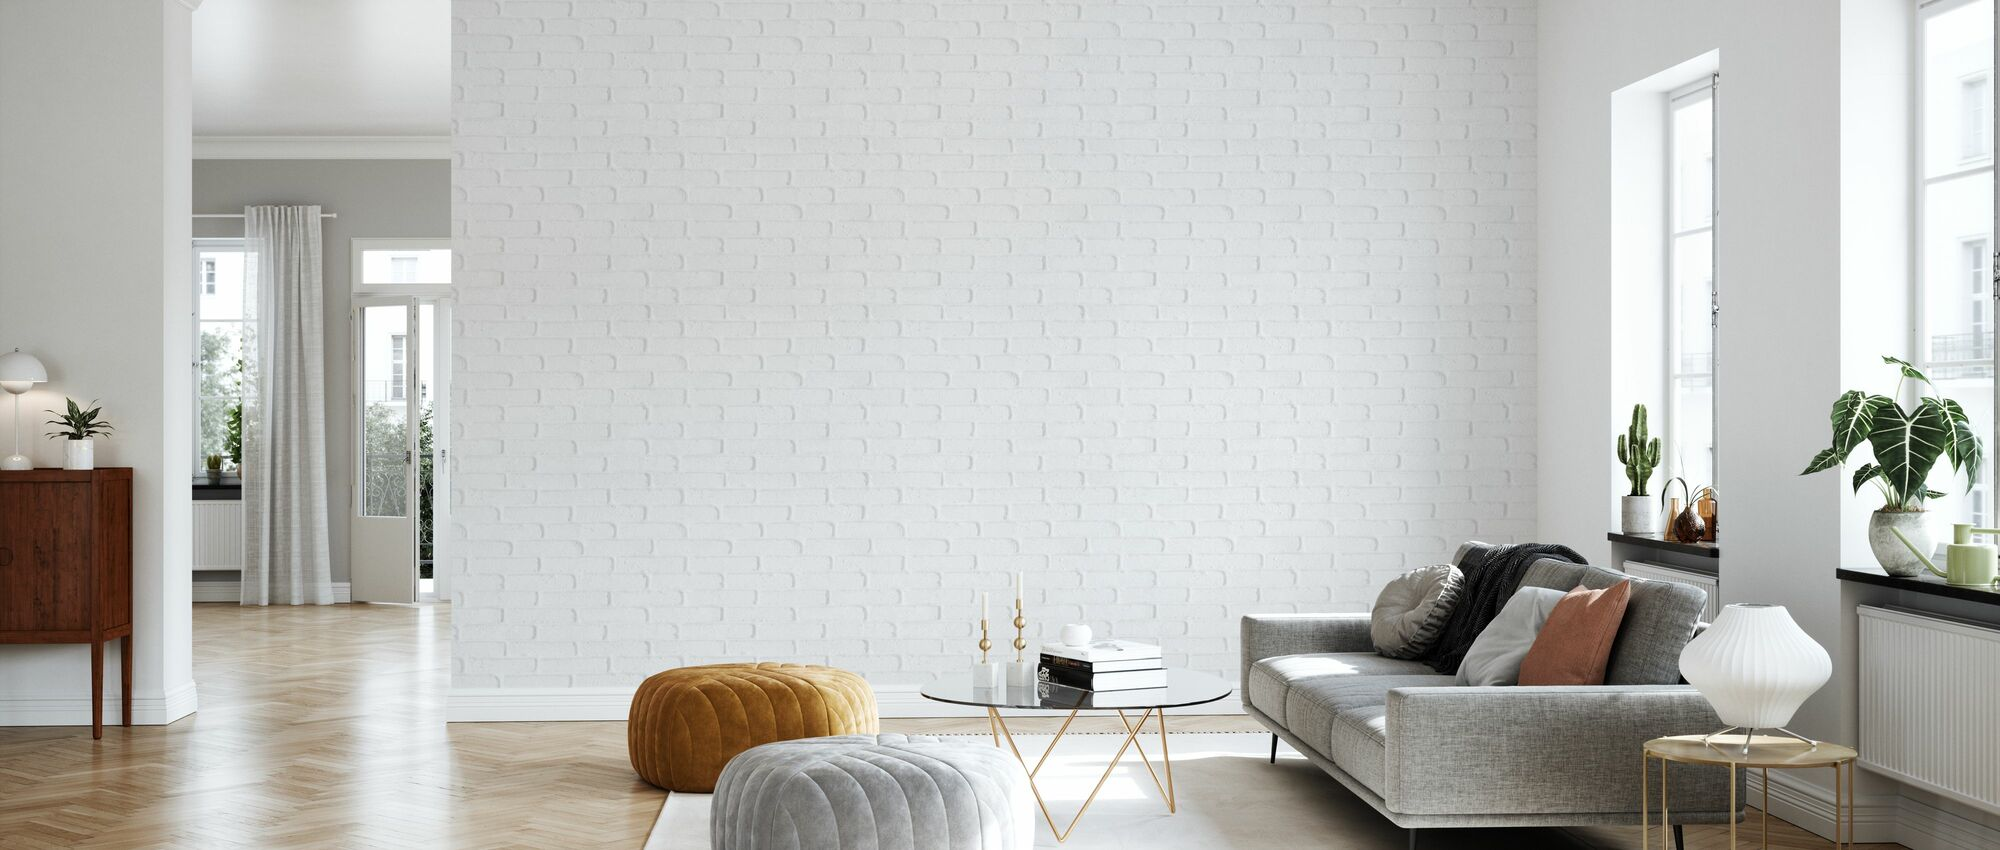 Soft White Brick Wall - Wallpaper - Living Room